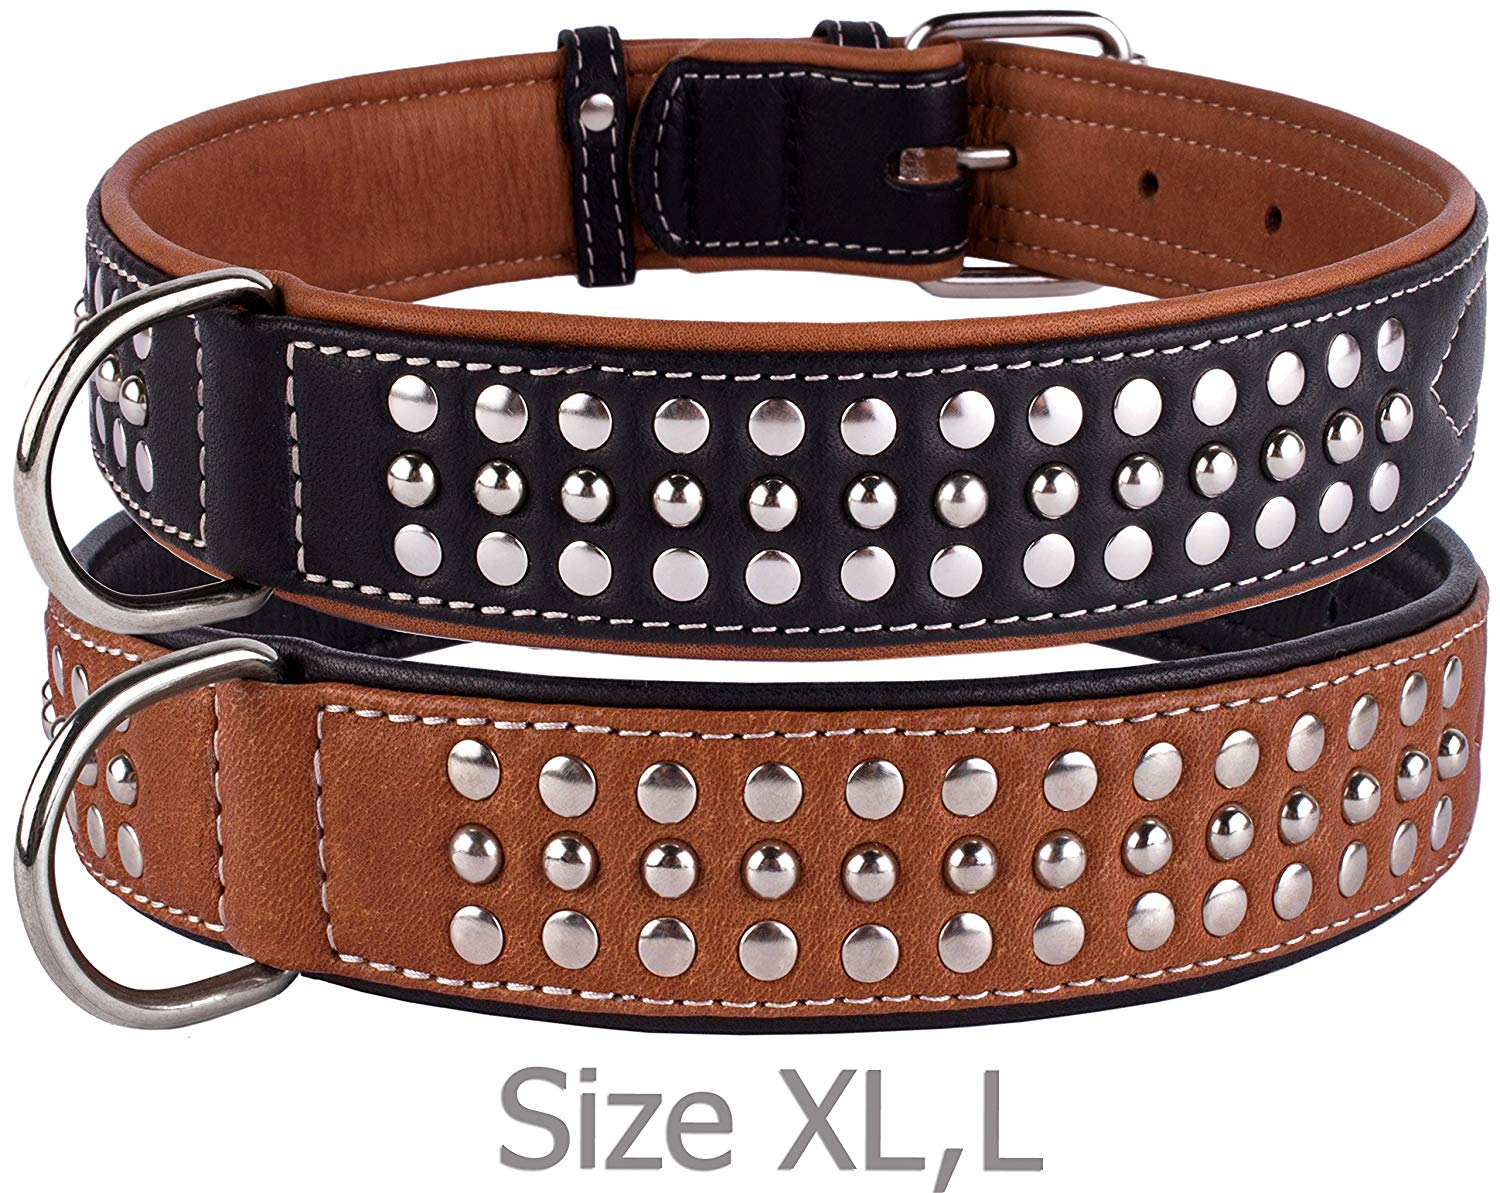 CollarDirect Handmade Studded Dog Collar, Genuine Leather Collar for Dogs, Soft Padded Leather Puppy Collar Brown Black Small Medium